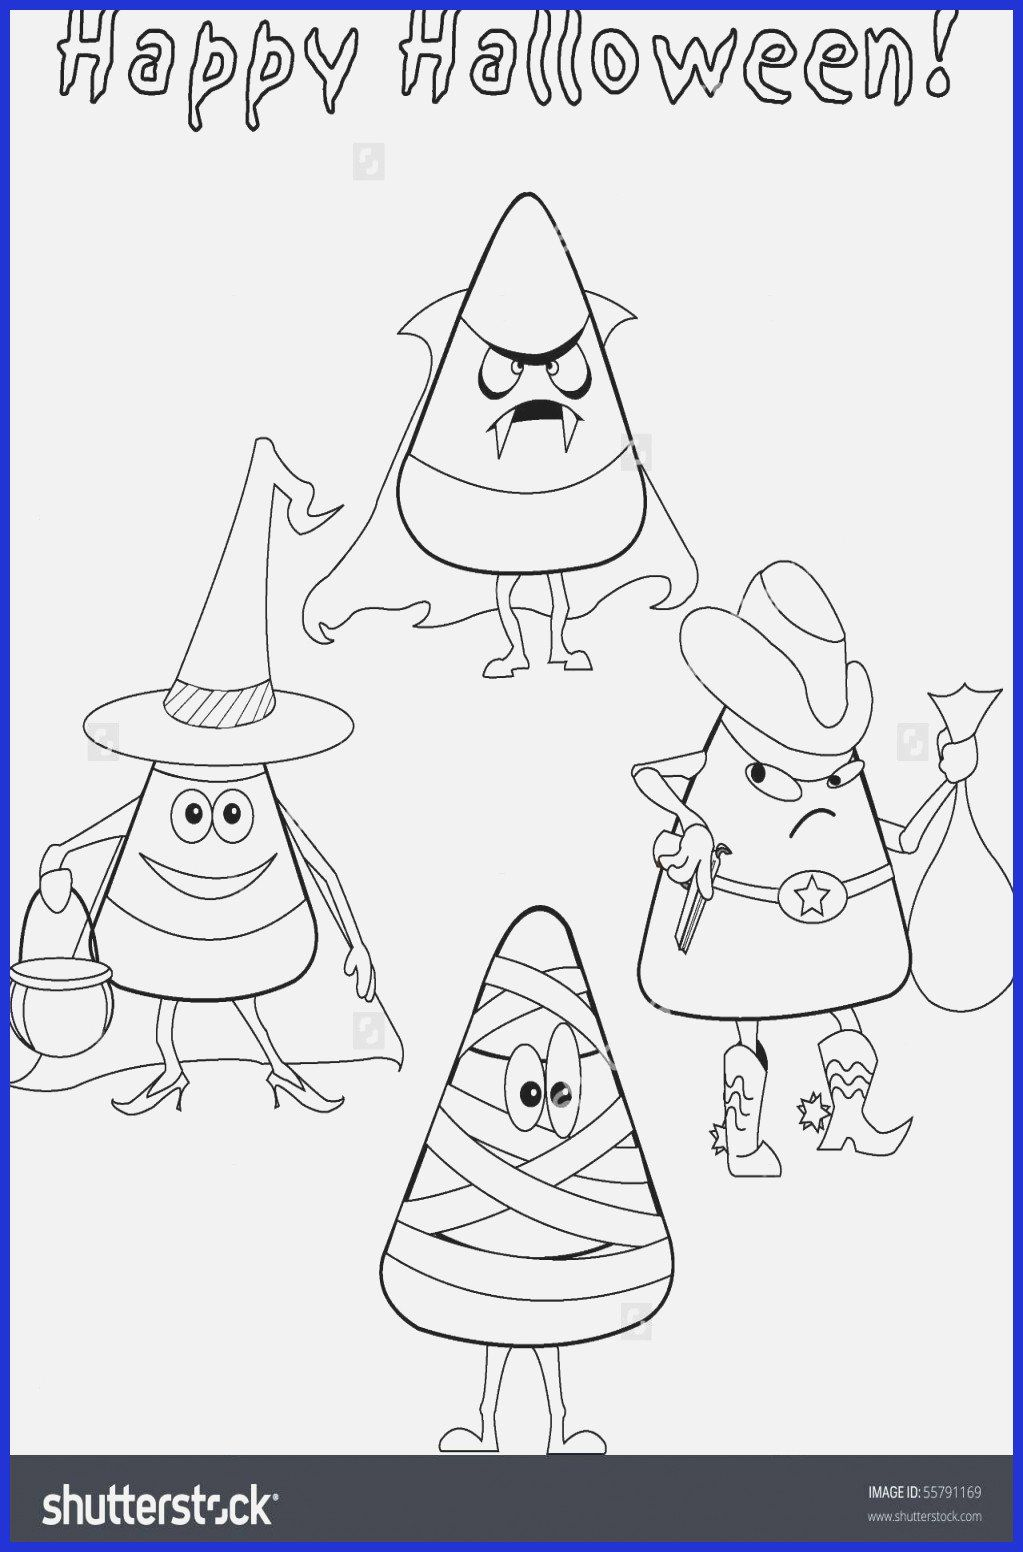 Candy Corn Coloring Page Unique 16 Inspirational Halloween